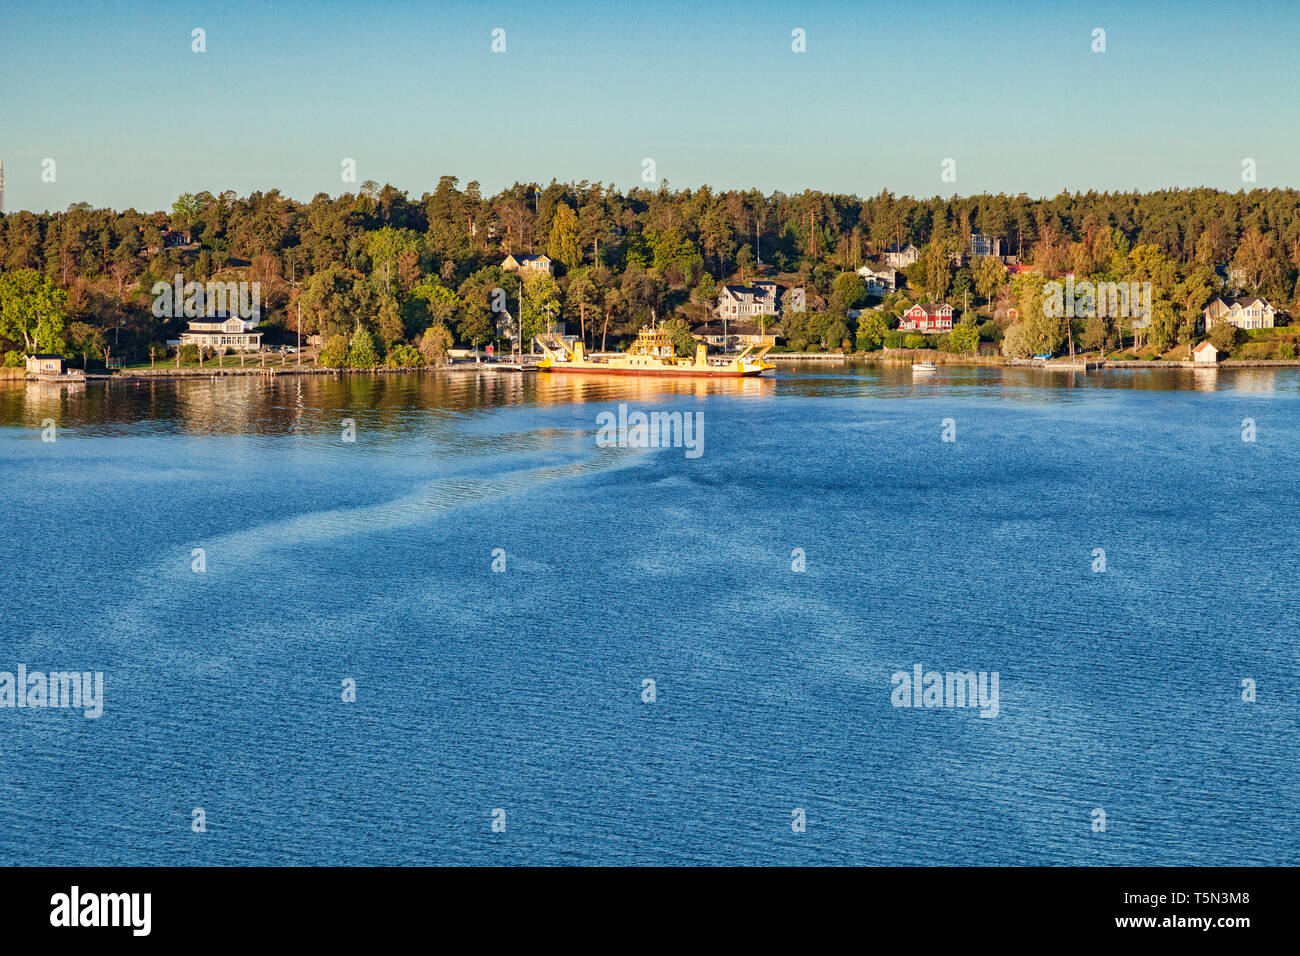 View of an island in the Stockholm Archipelago, Sweden, from a cruise liner. - Stock Image